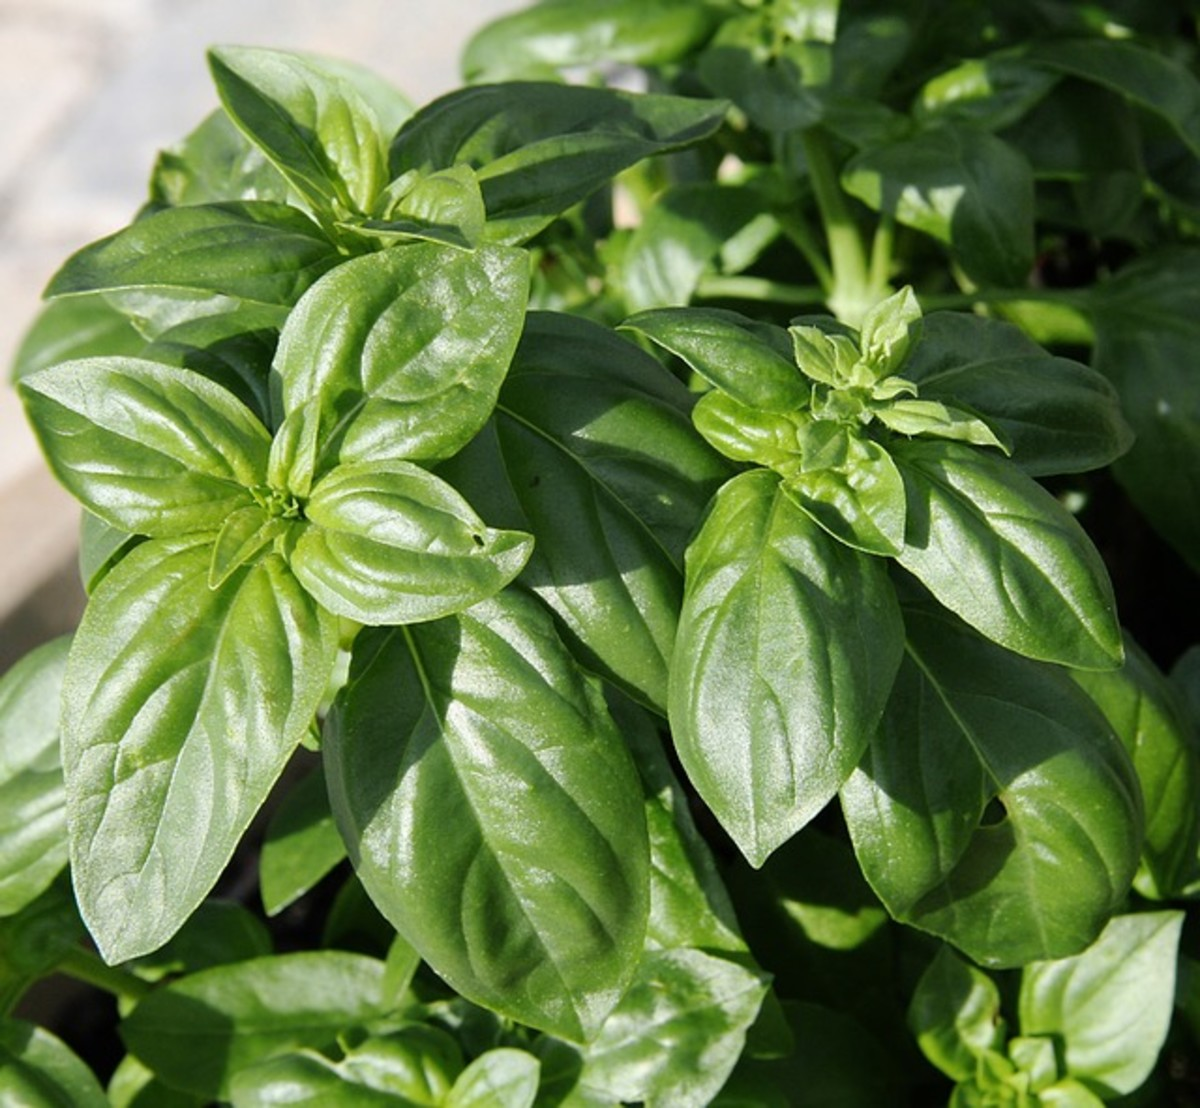 The scent of basil-- just close your eyes and open your mind and imagine you can smell the goodness.